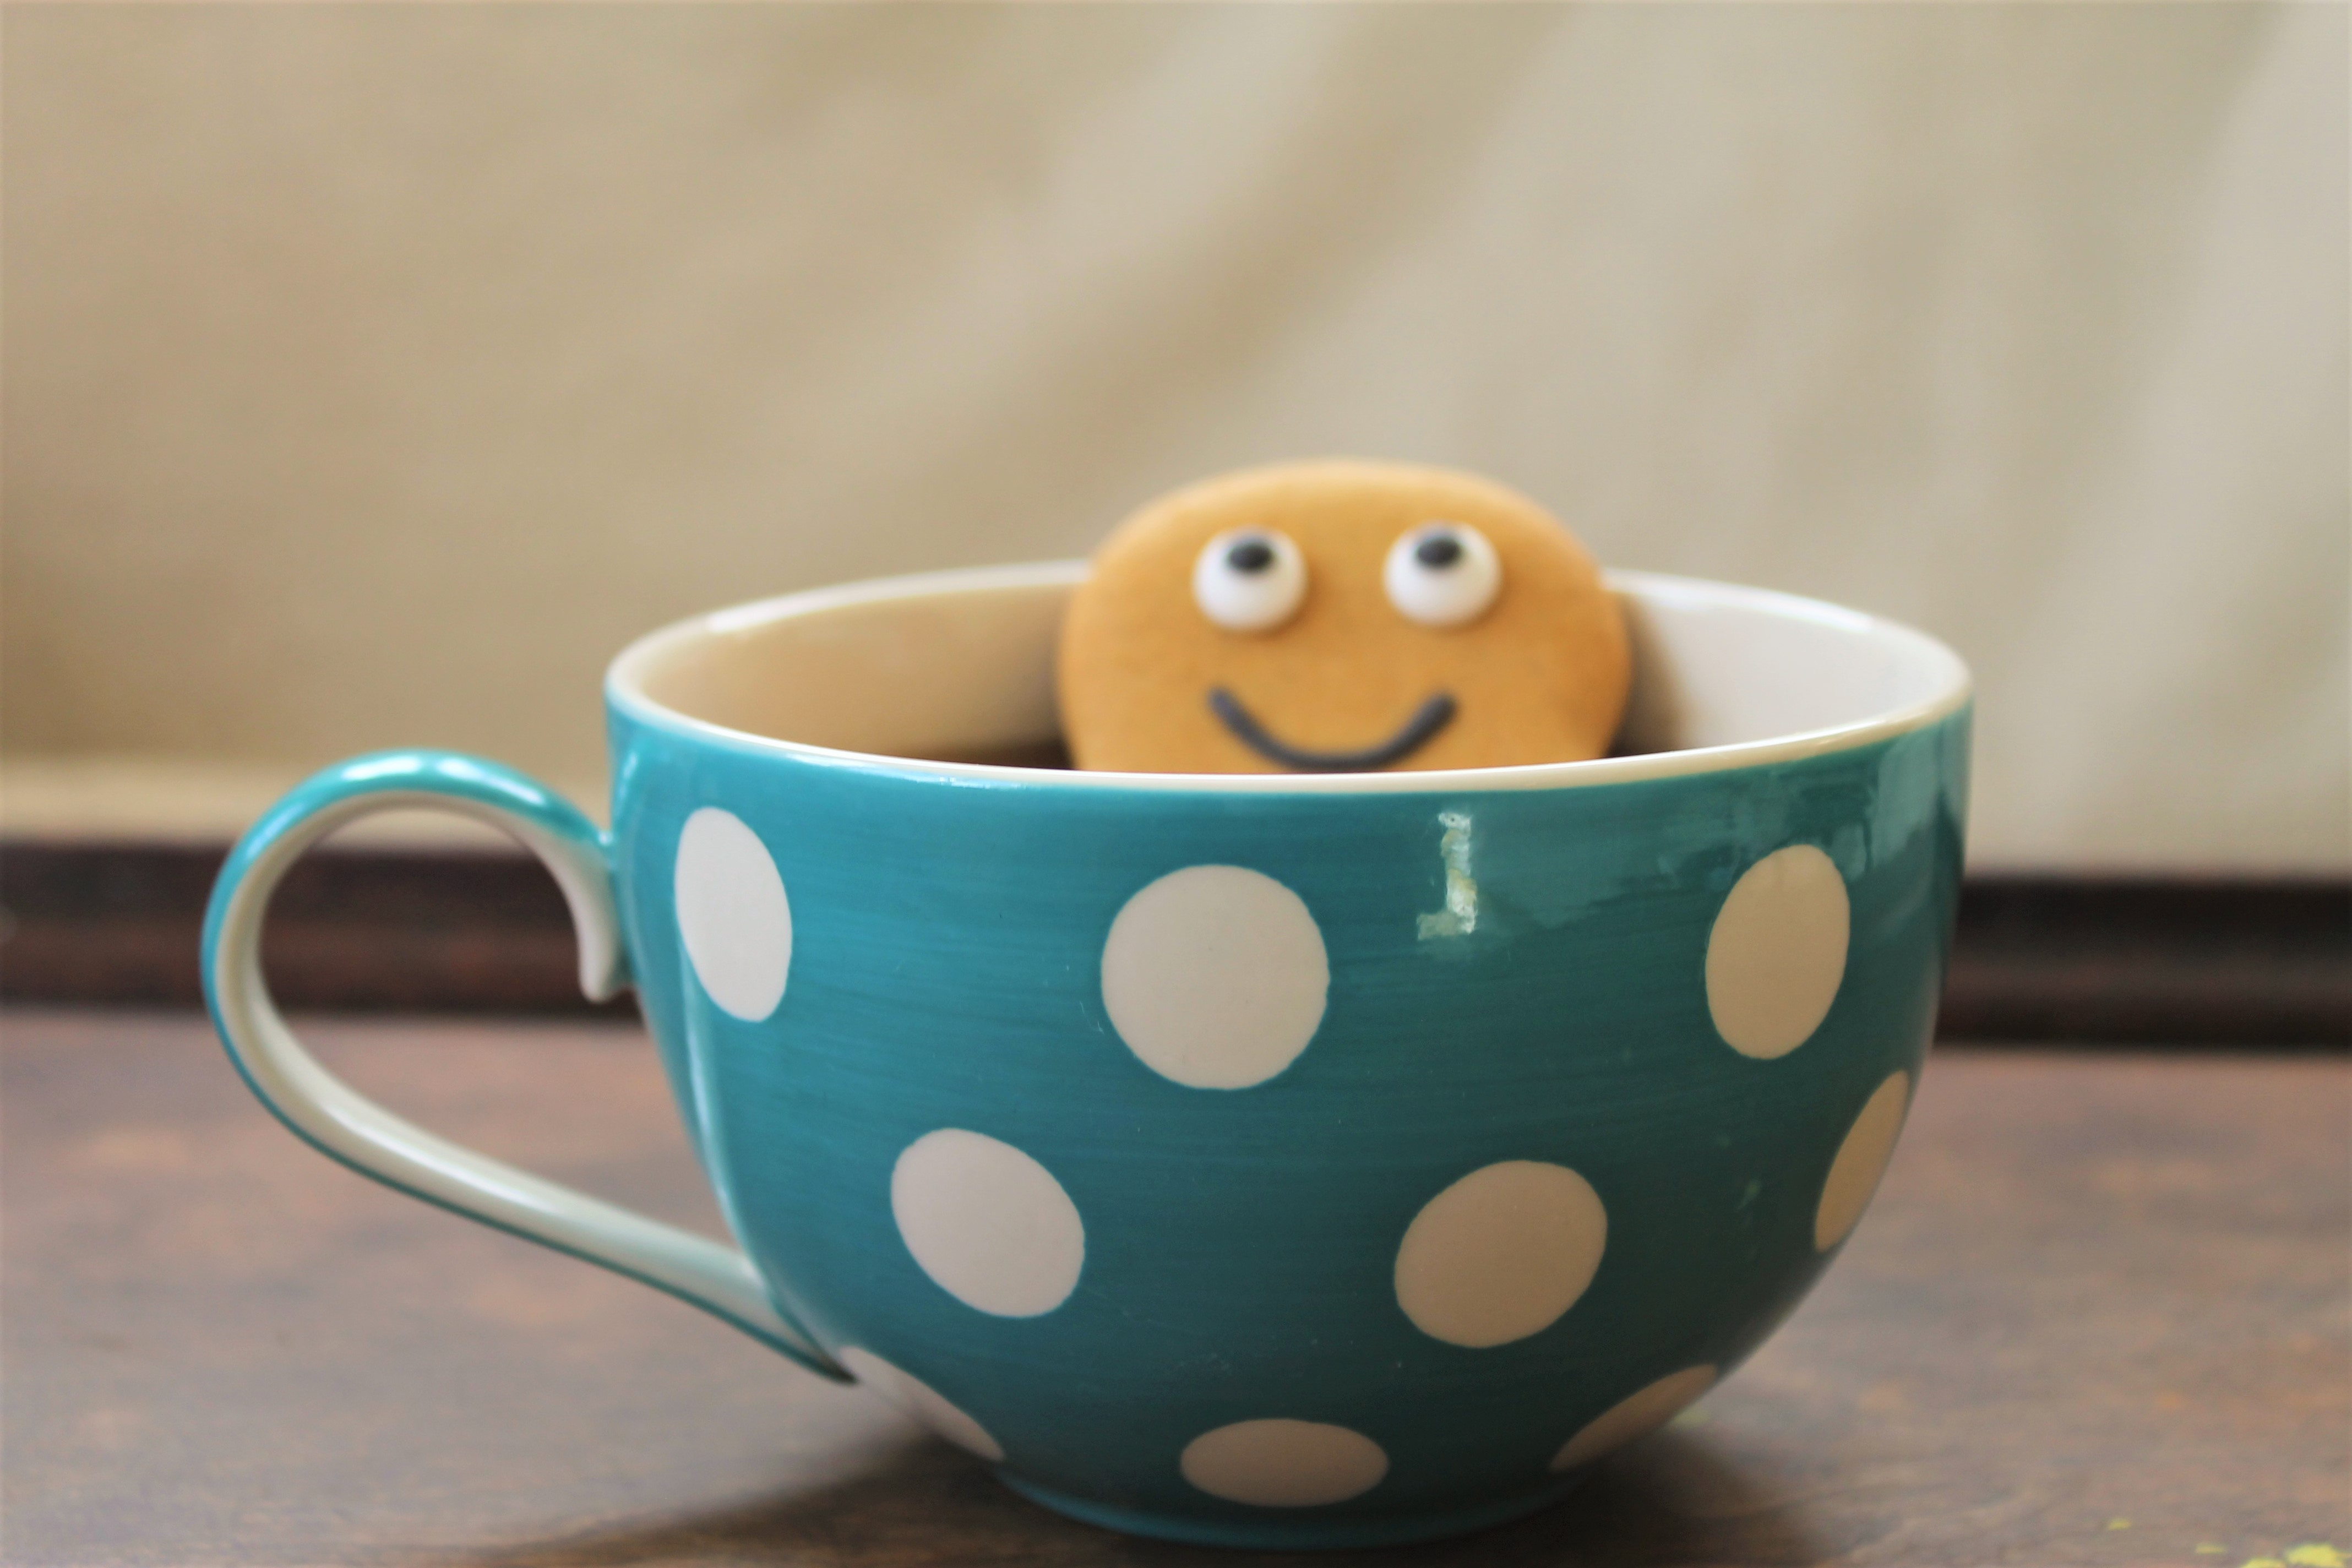 ginger bread man in a polka dot teacup